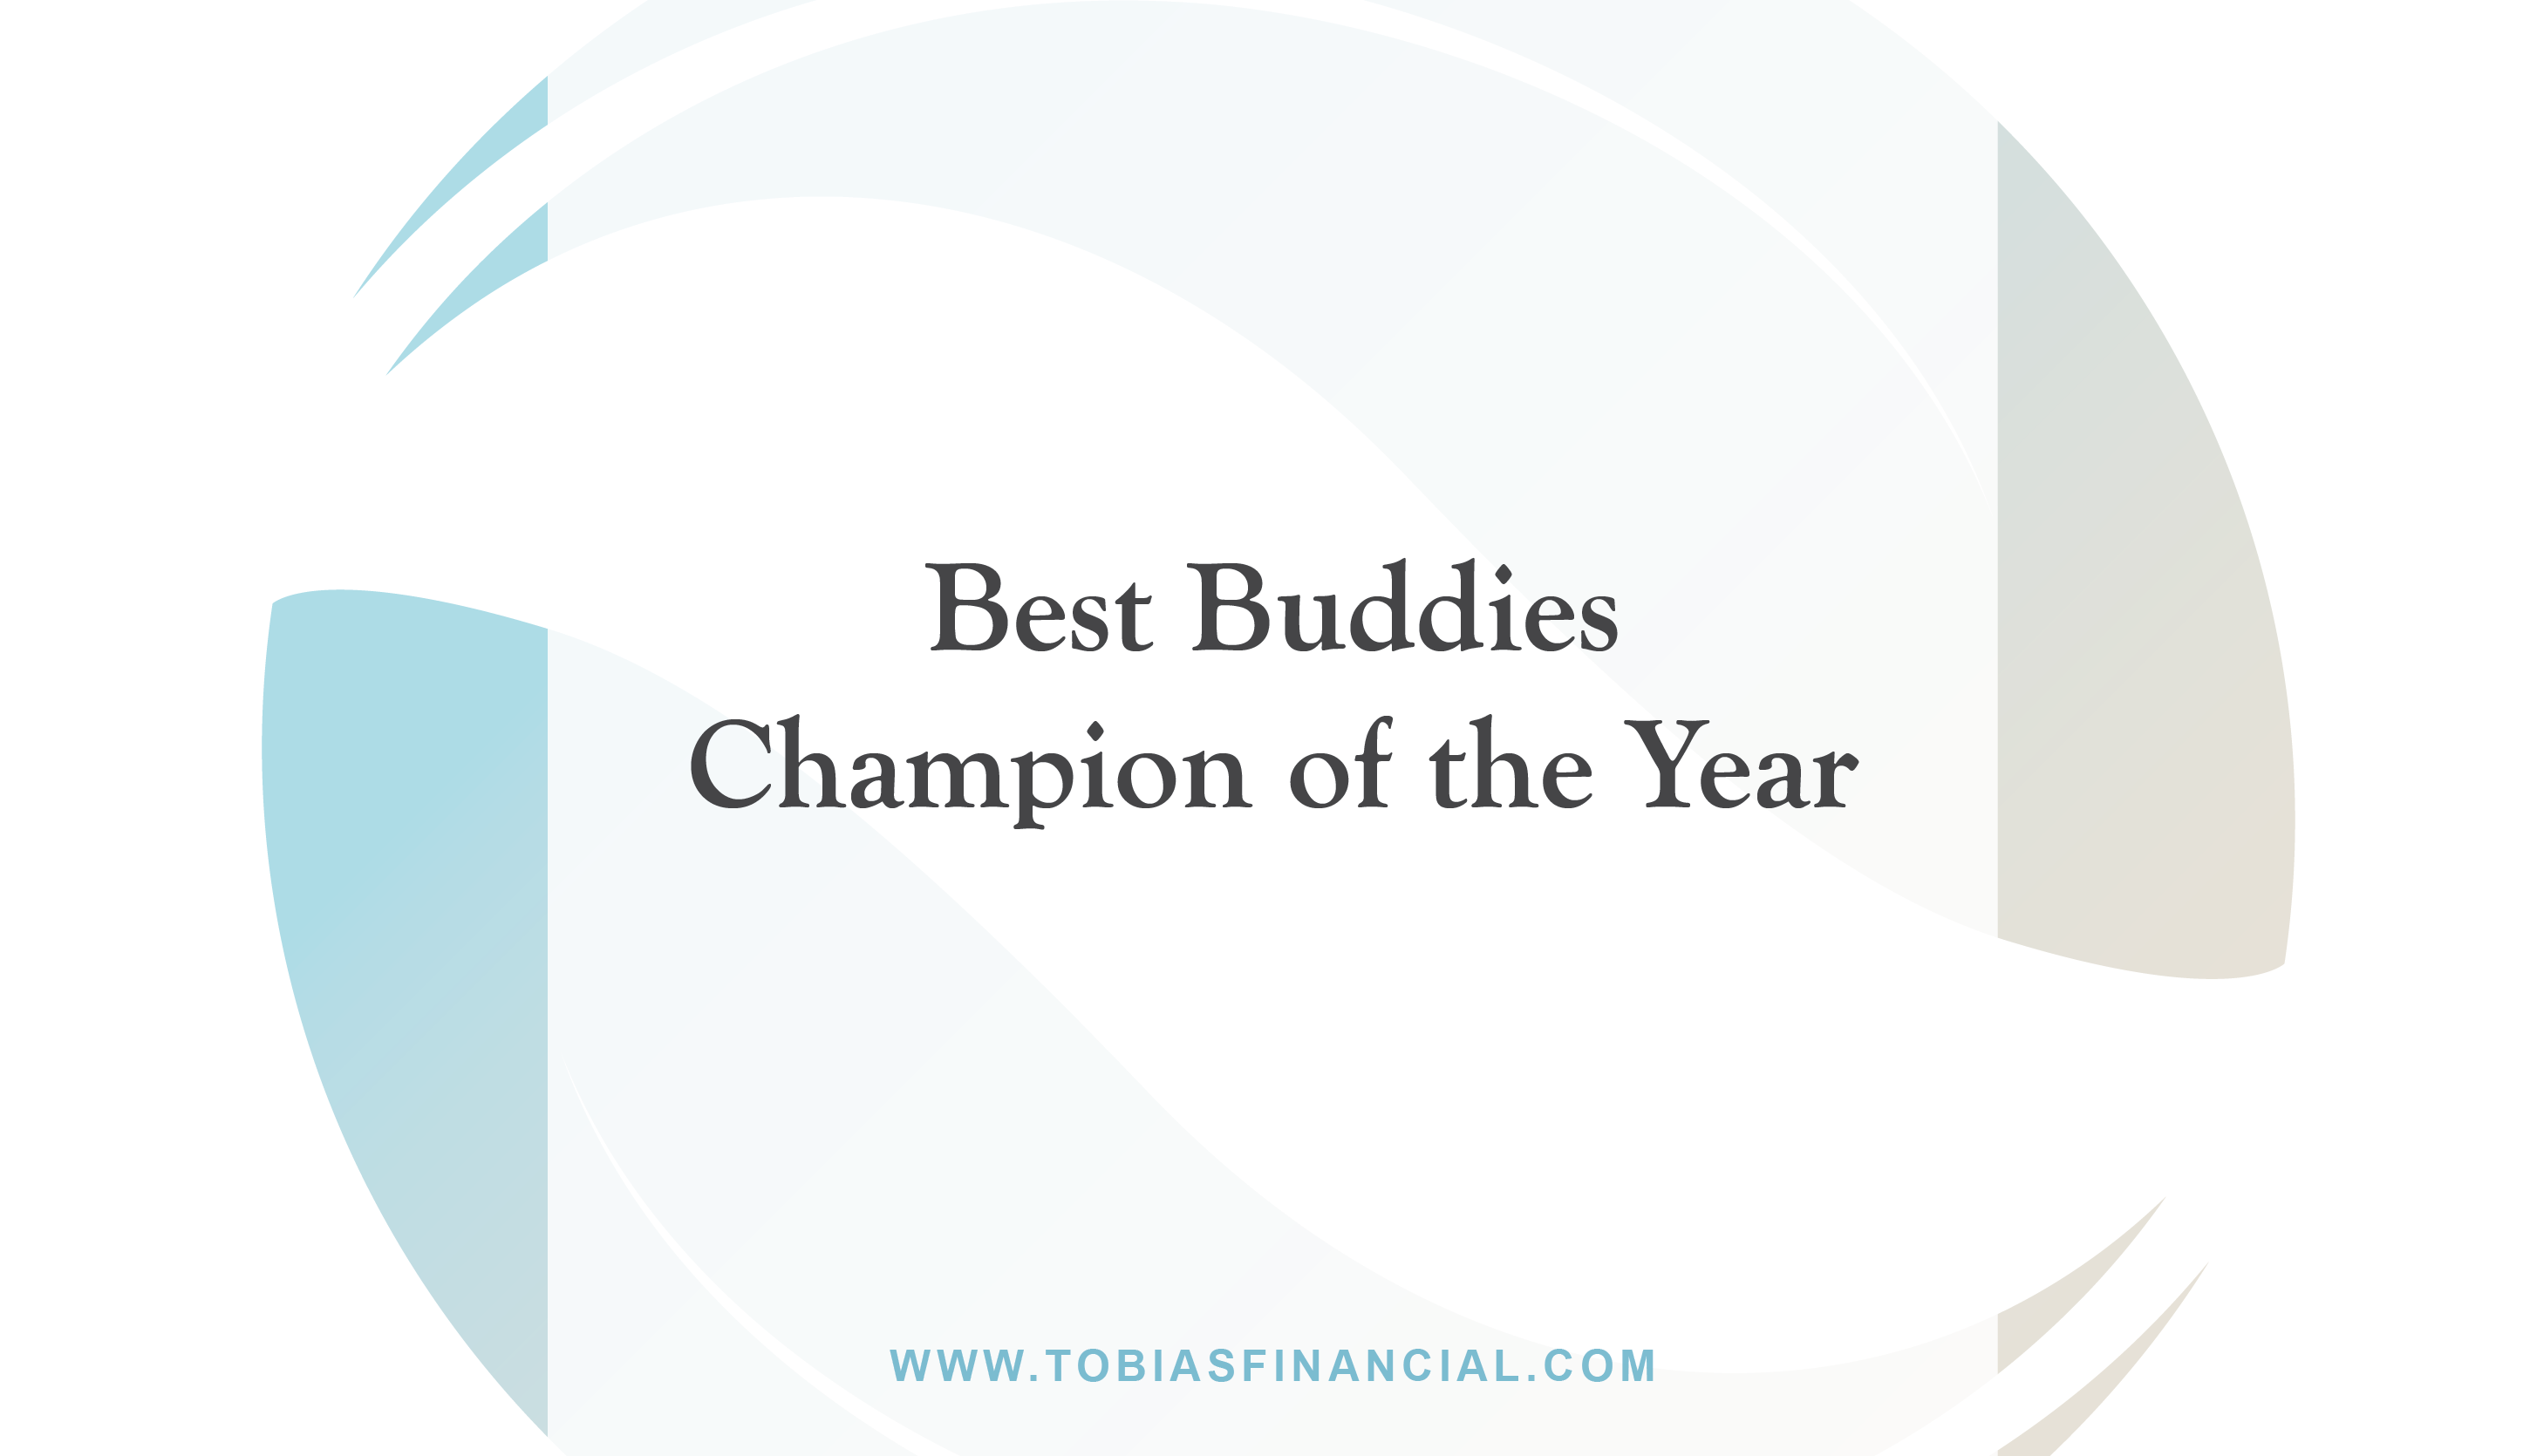 Best Buddies Champion of the Year